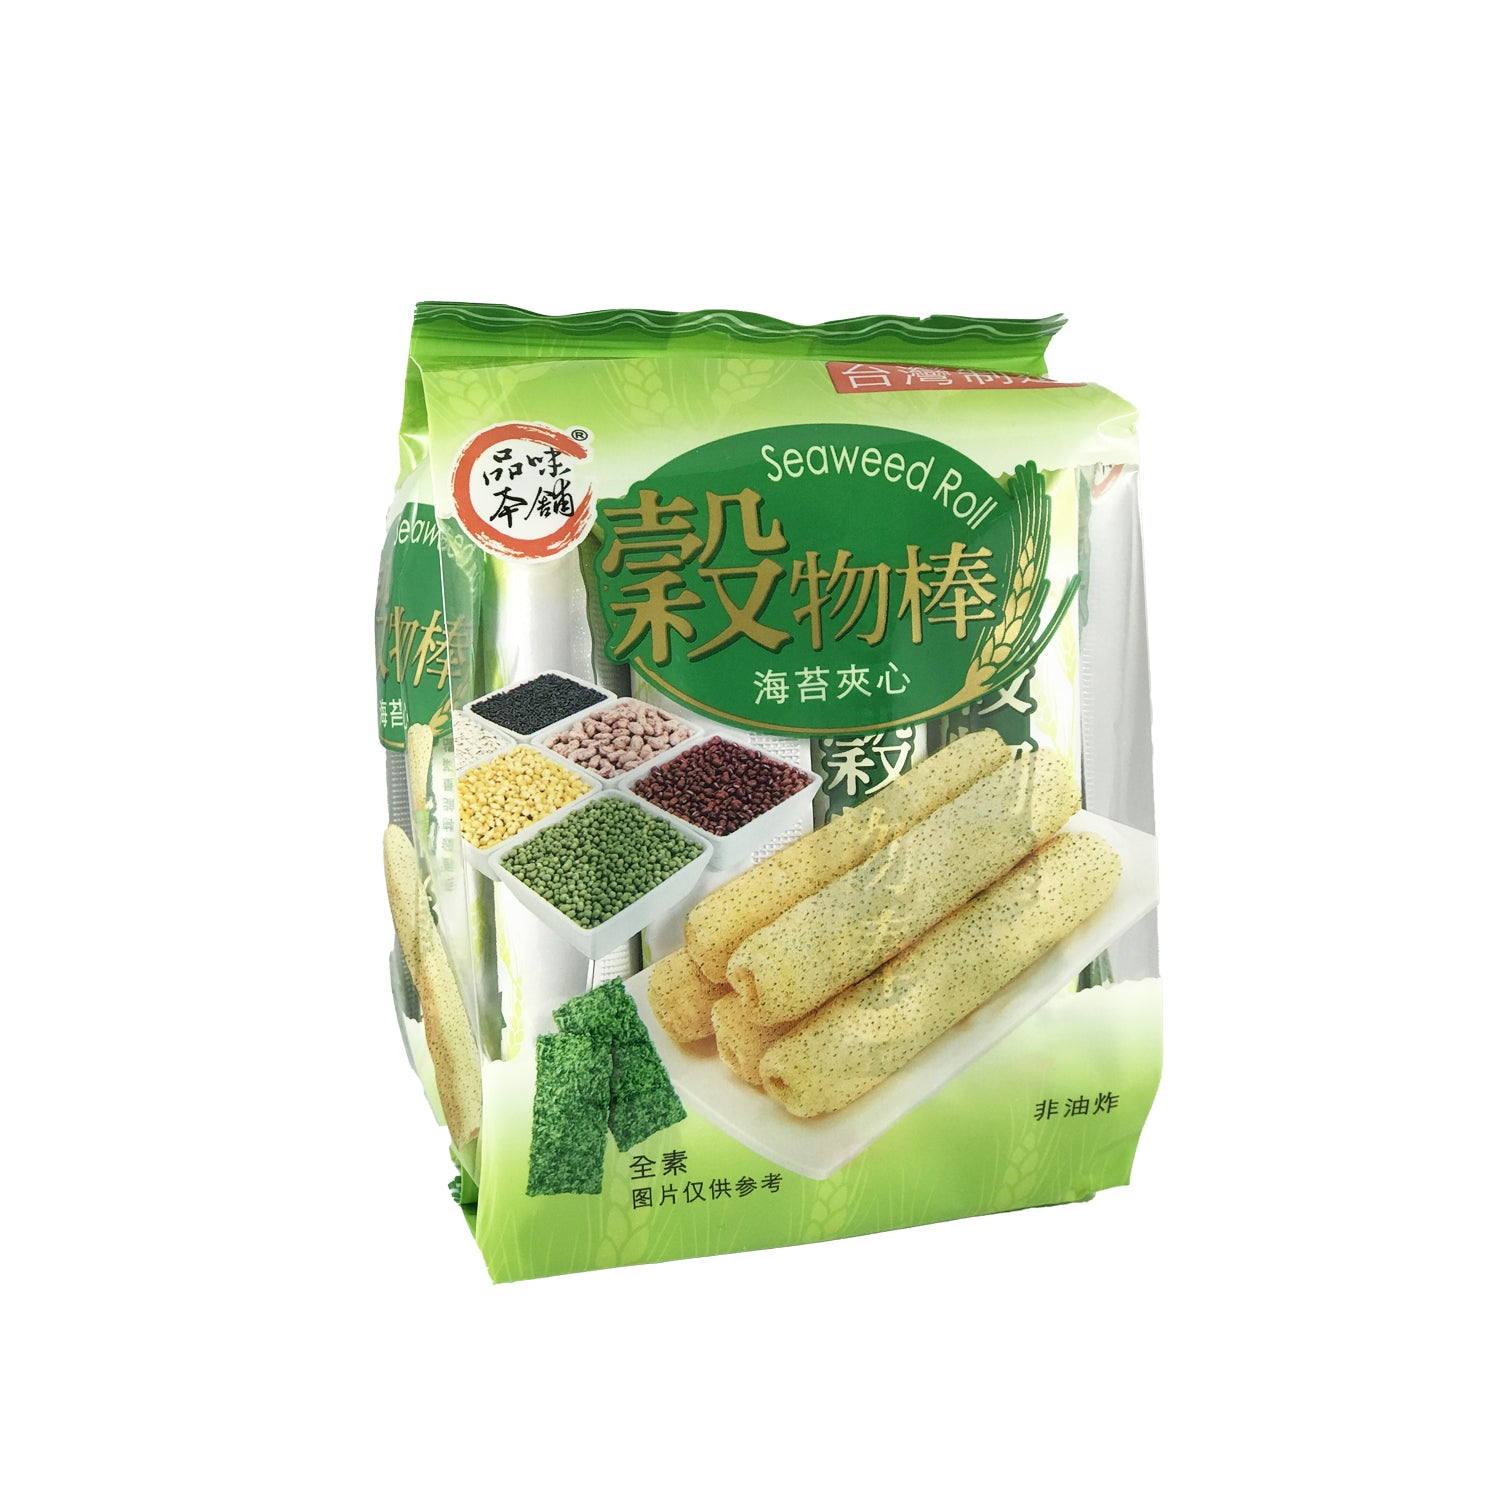 Taste Tea Shop Konjac Brown Rice Seaweed Roll